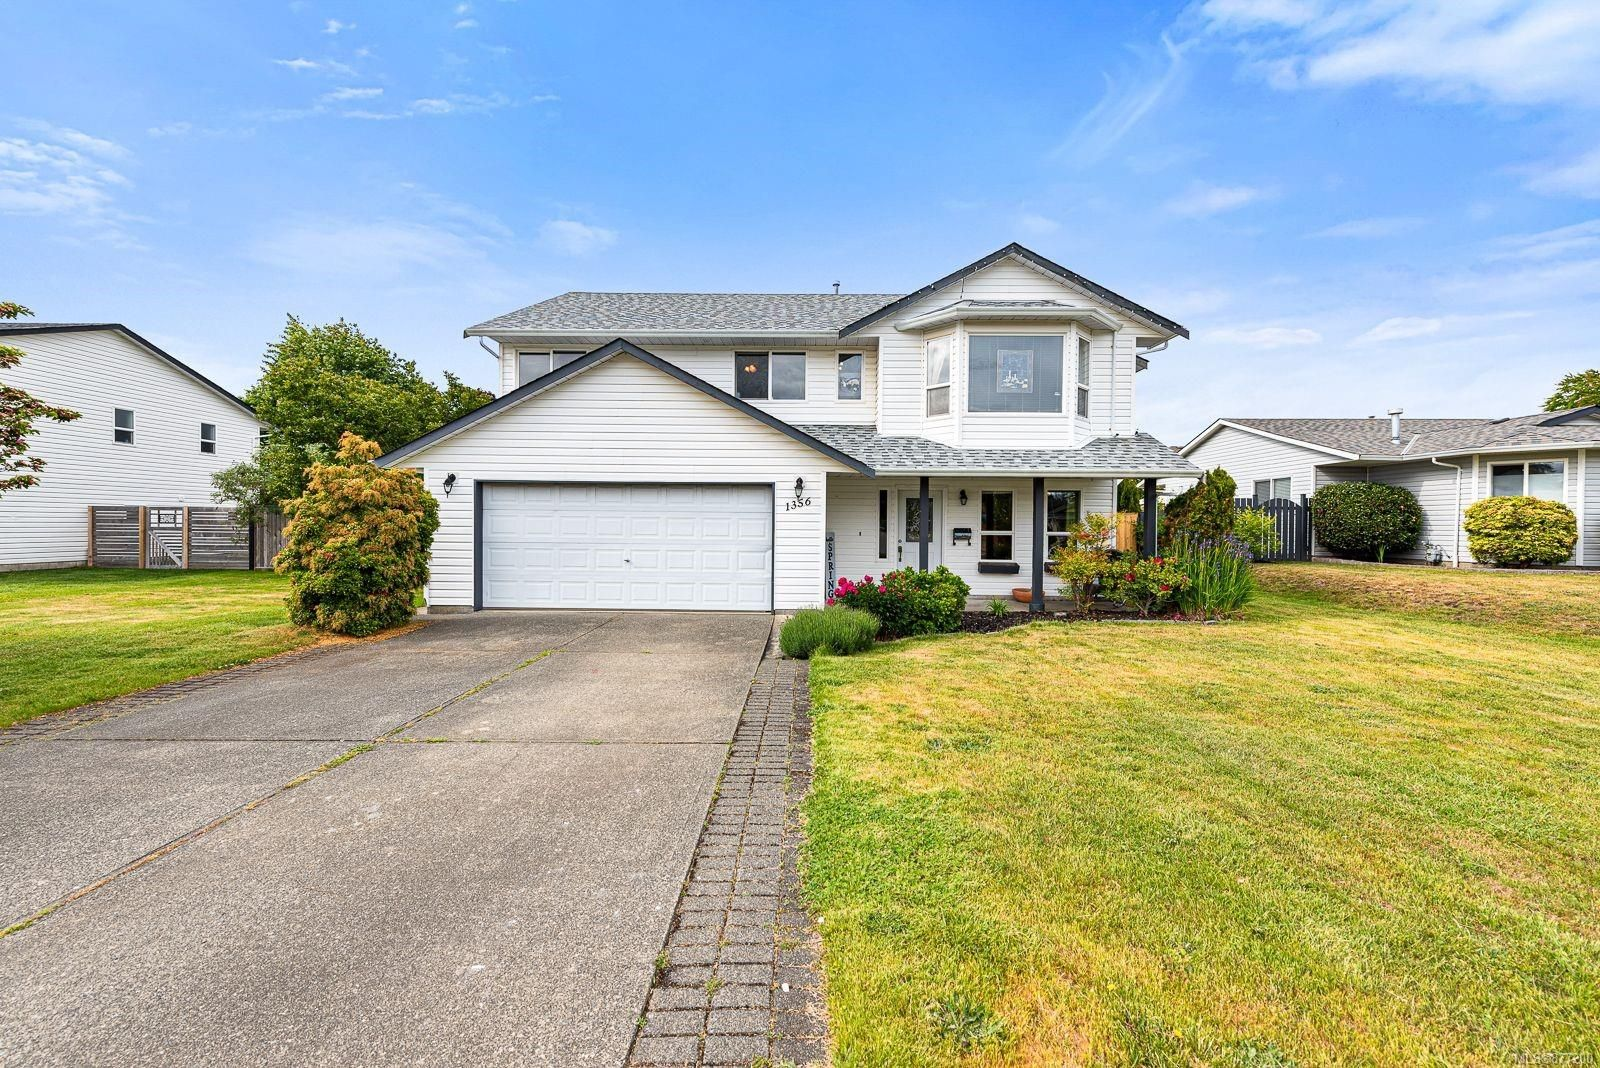 Main Photo: 1356 Ocean View Ave in : CV Comox (Town of) House for sale (Comox Valley)  : MLS®# 877200